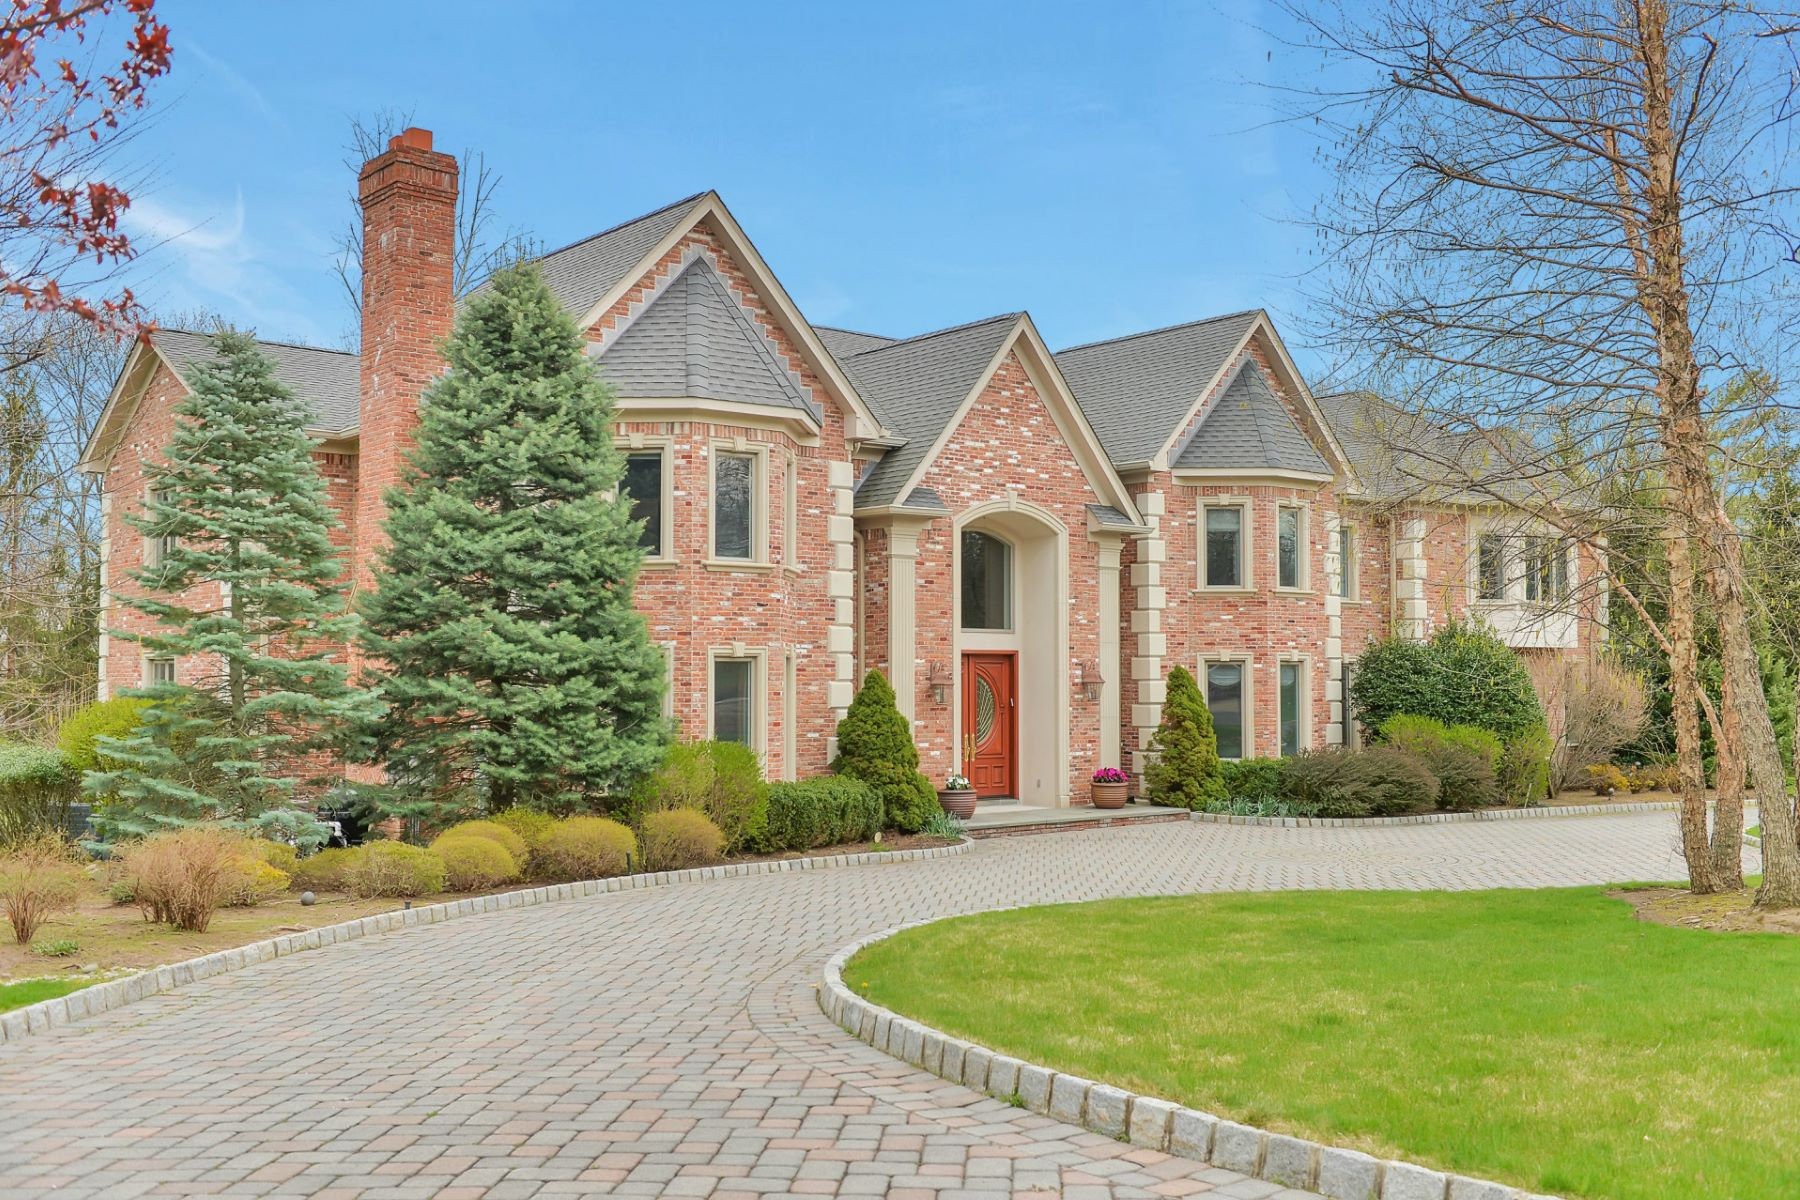 Single Family Home for Sale at Renowned Builder Kevo Construction 4 Glen Carl Rd Upper Saddle River, 07458 United States